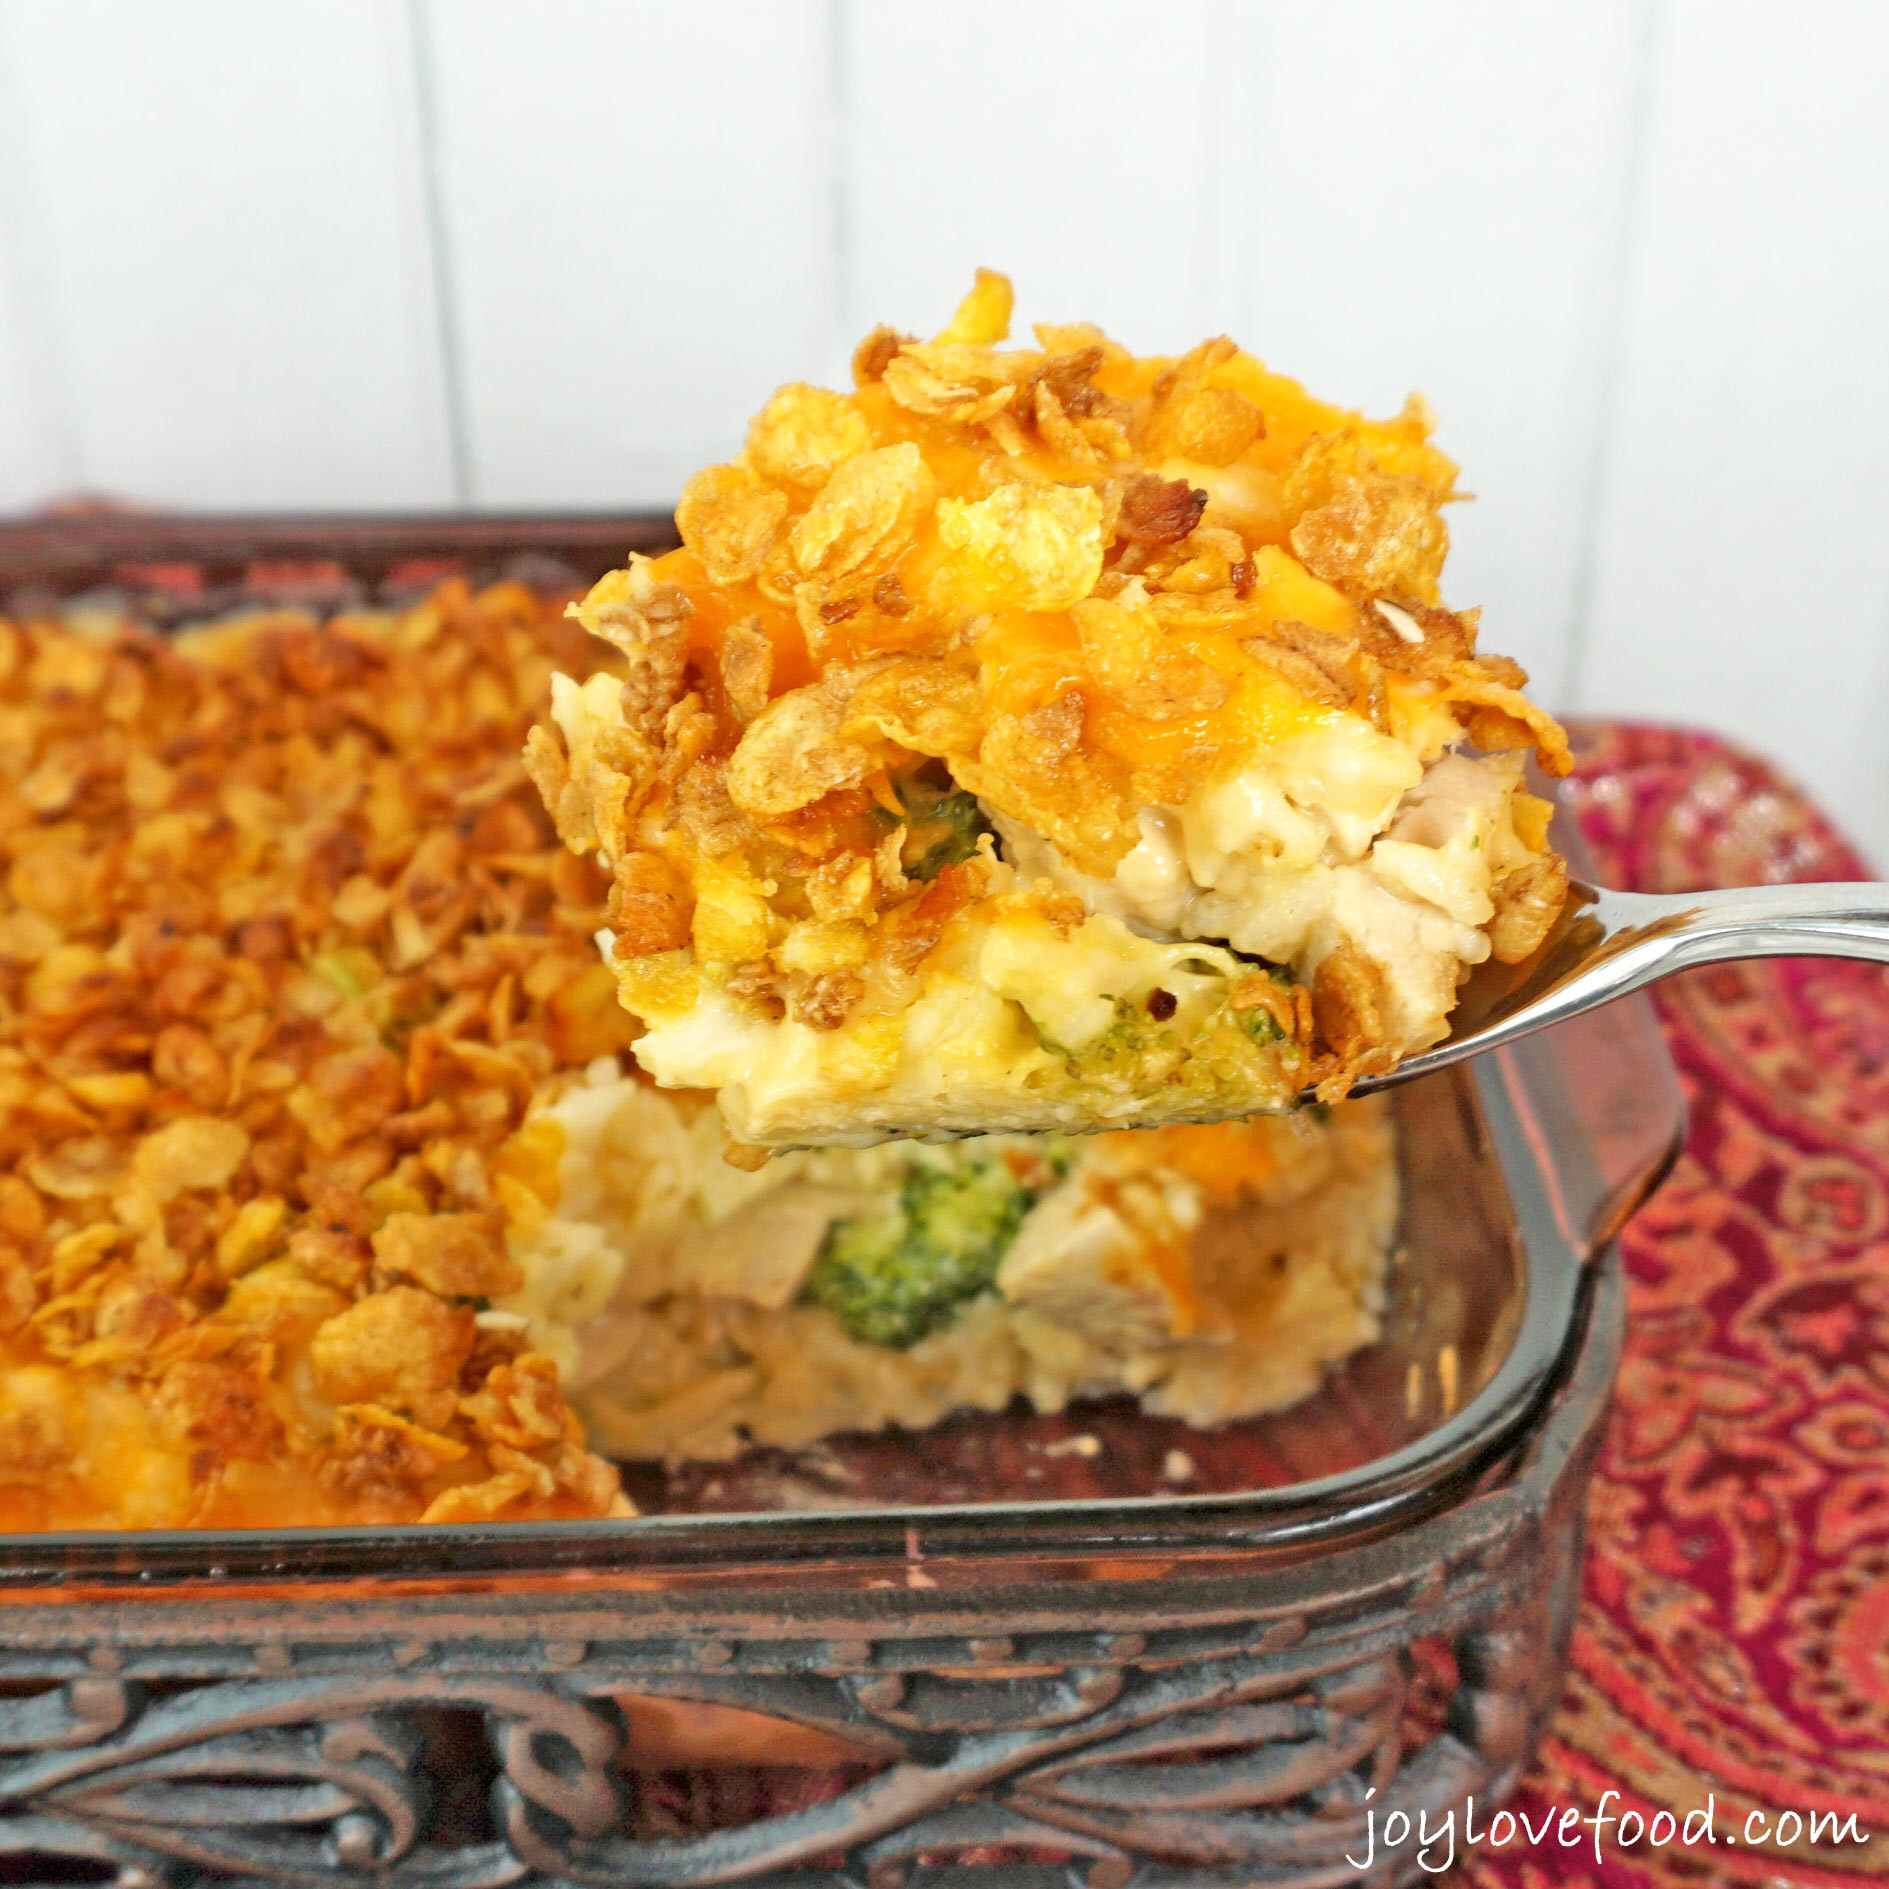 Chicken And Rice Casserole  Cheesy Chicken Broccoli and Rice Casserole Joy Love Food